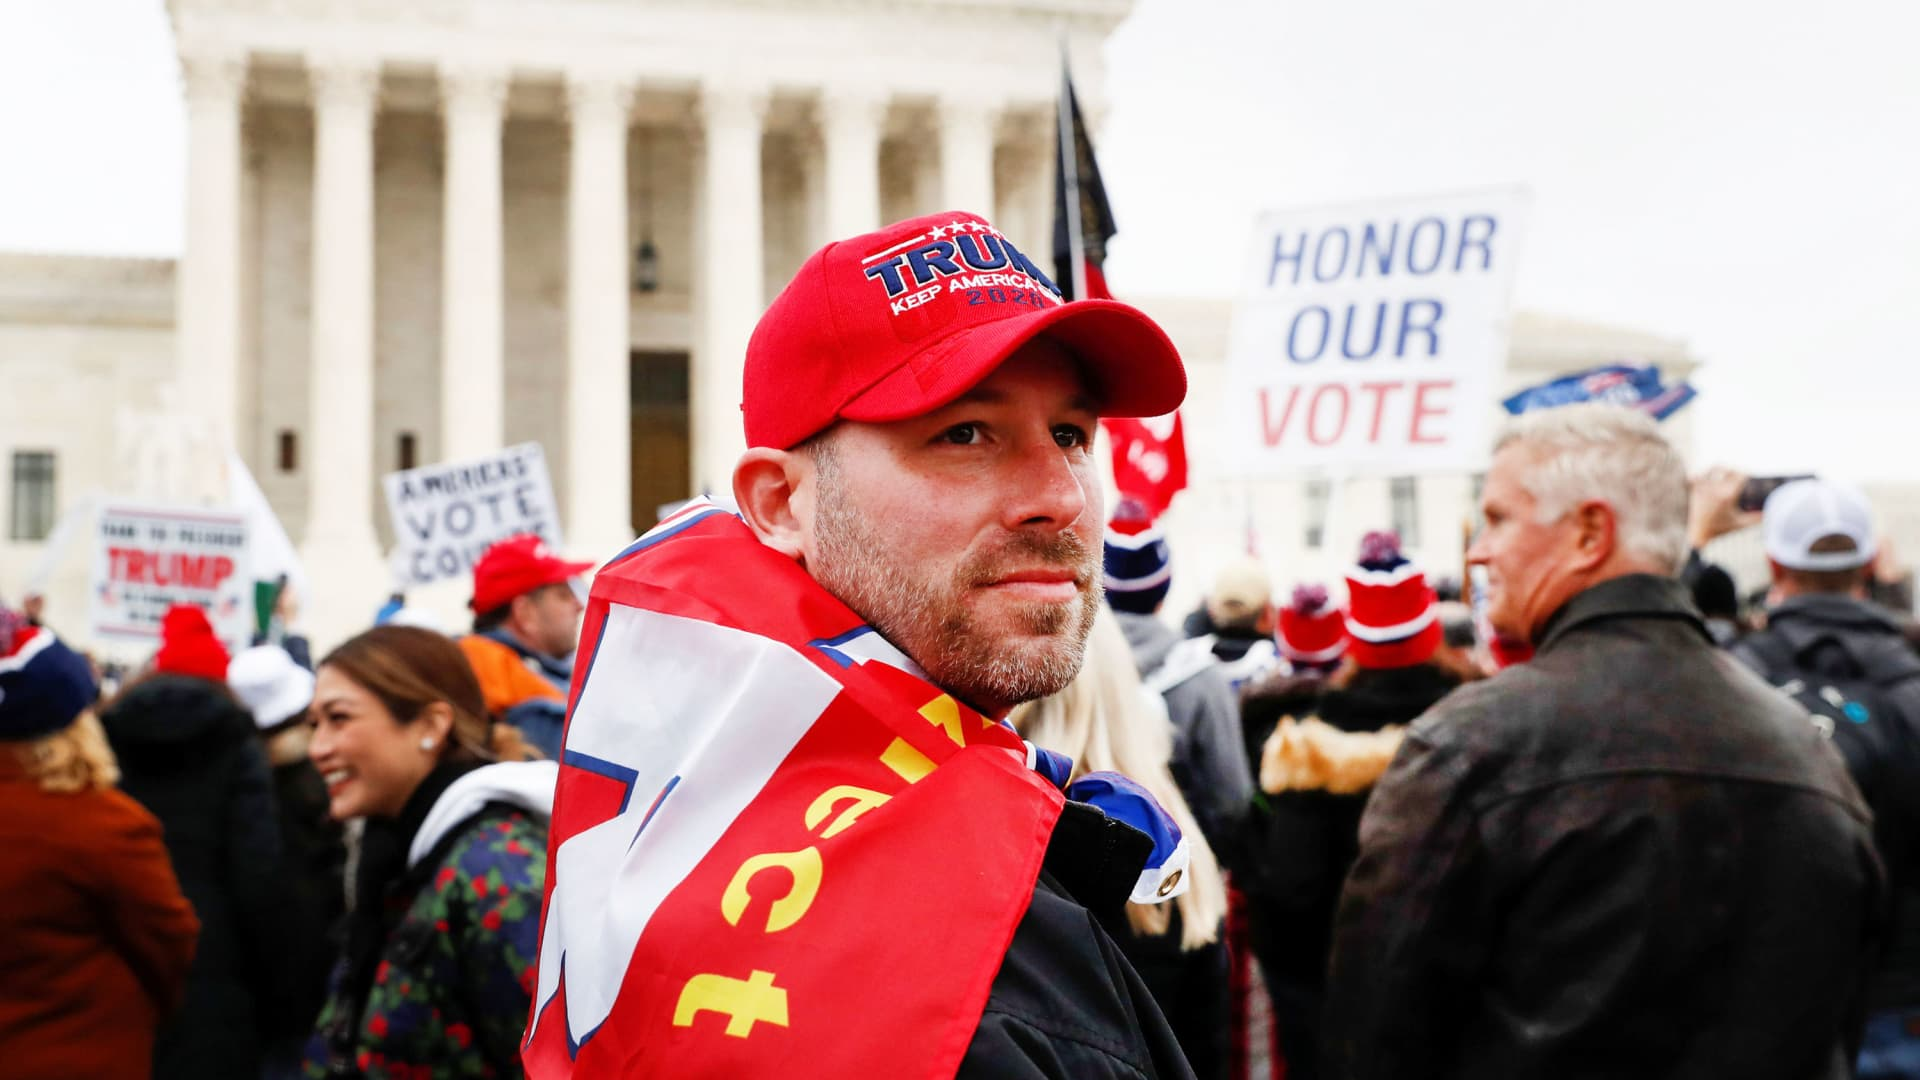 A supporter of U.S. President Donald Trump looks on as others gather in front of the Supreme Court building ahead of the U.S. Congress certification of the November 2020 election results during protests in Washington, January 5, 2021.